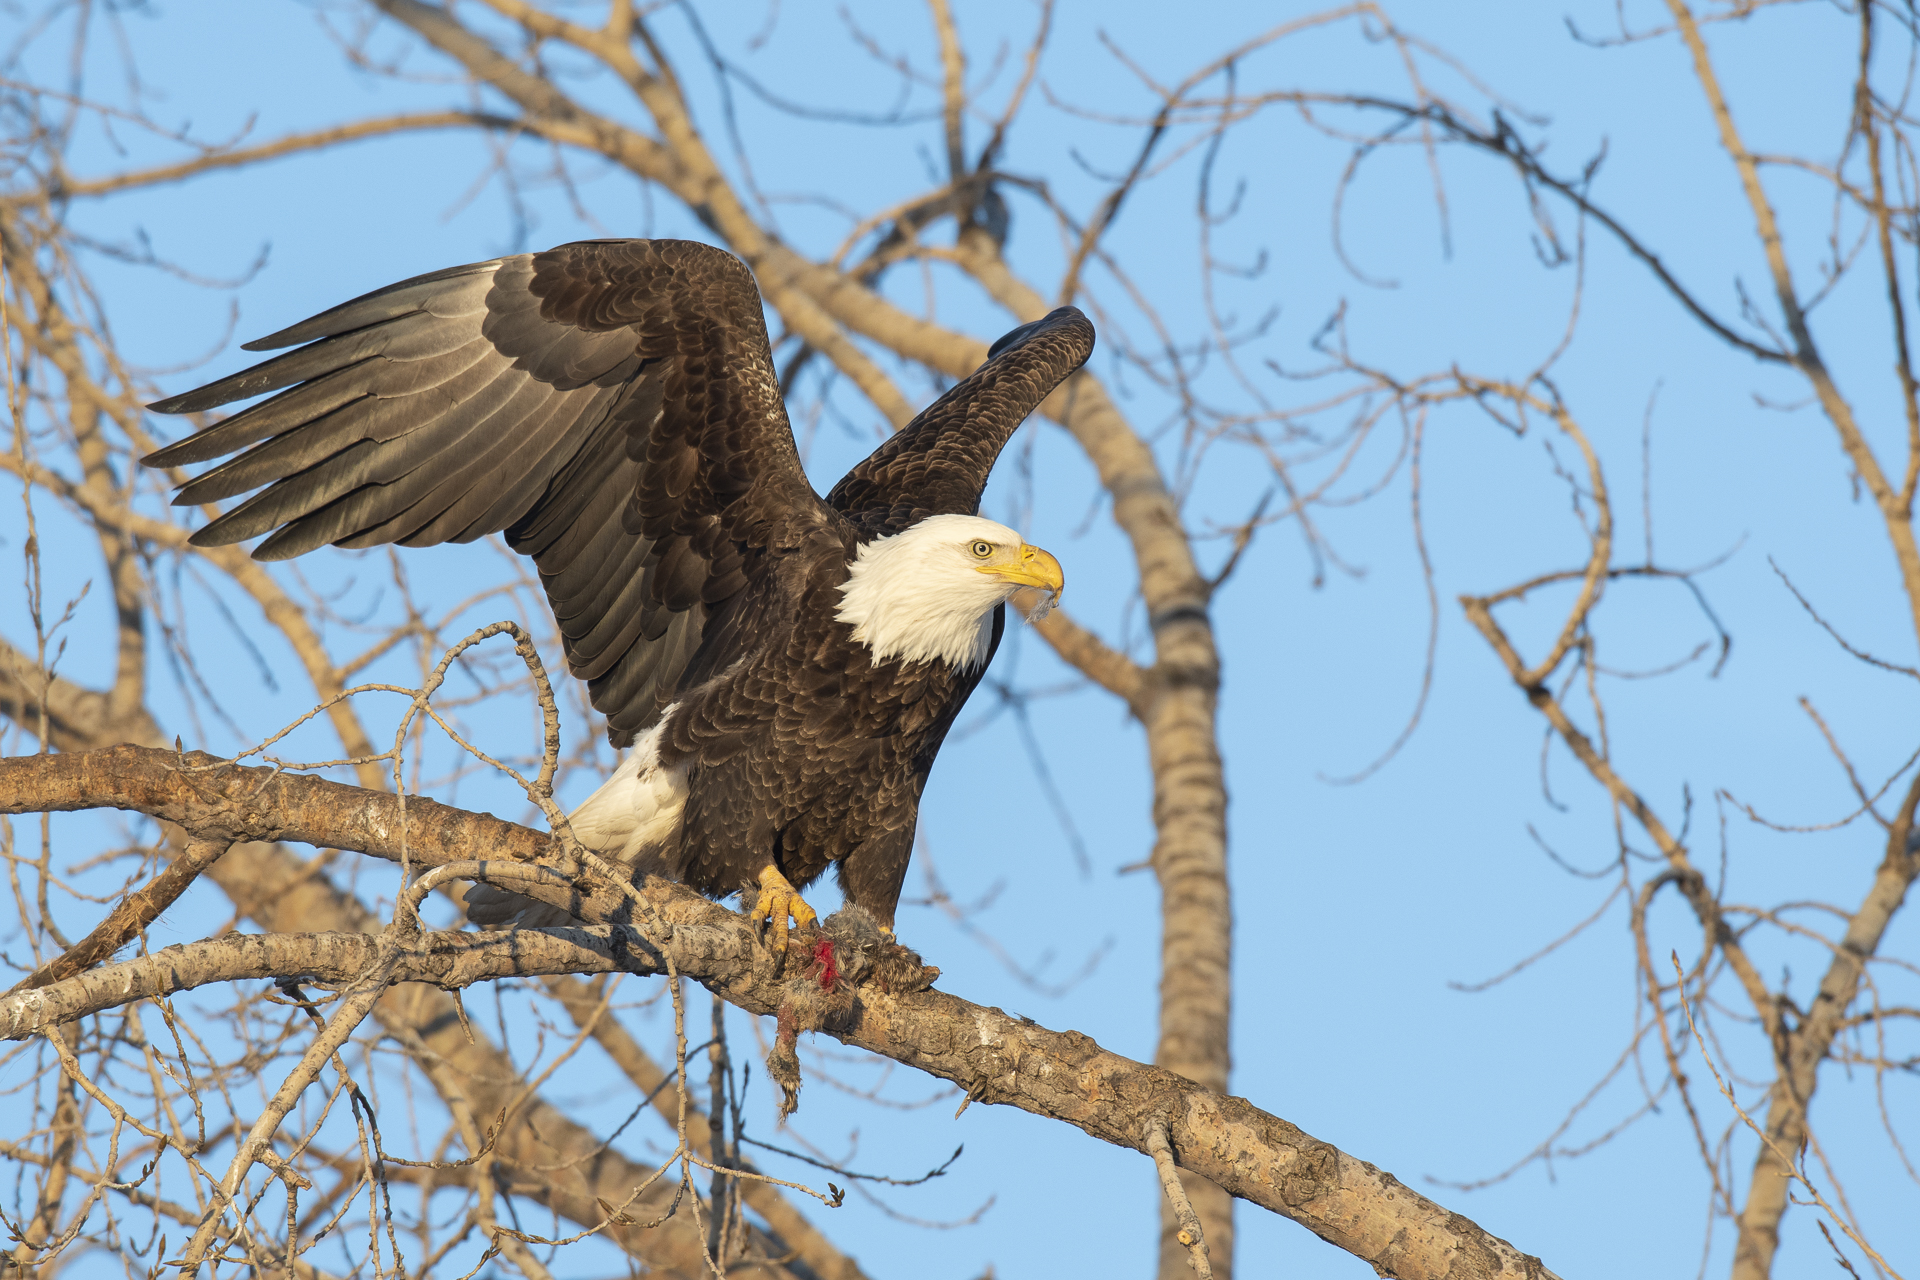 Adult bald eagle with prey